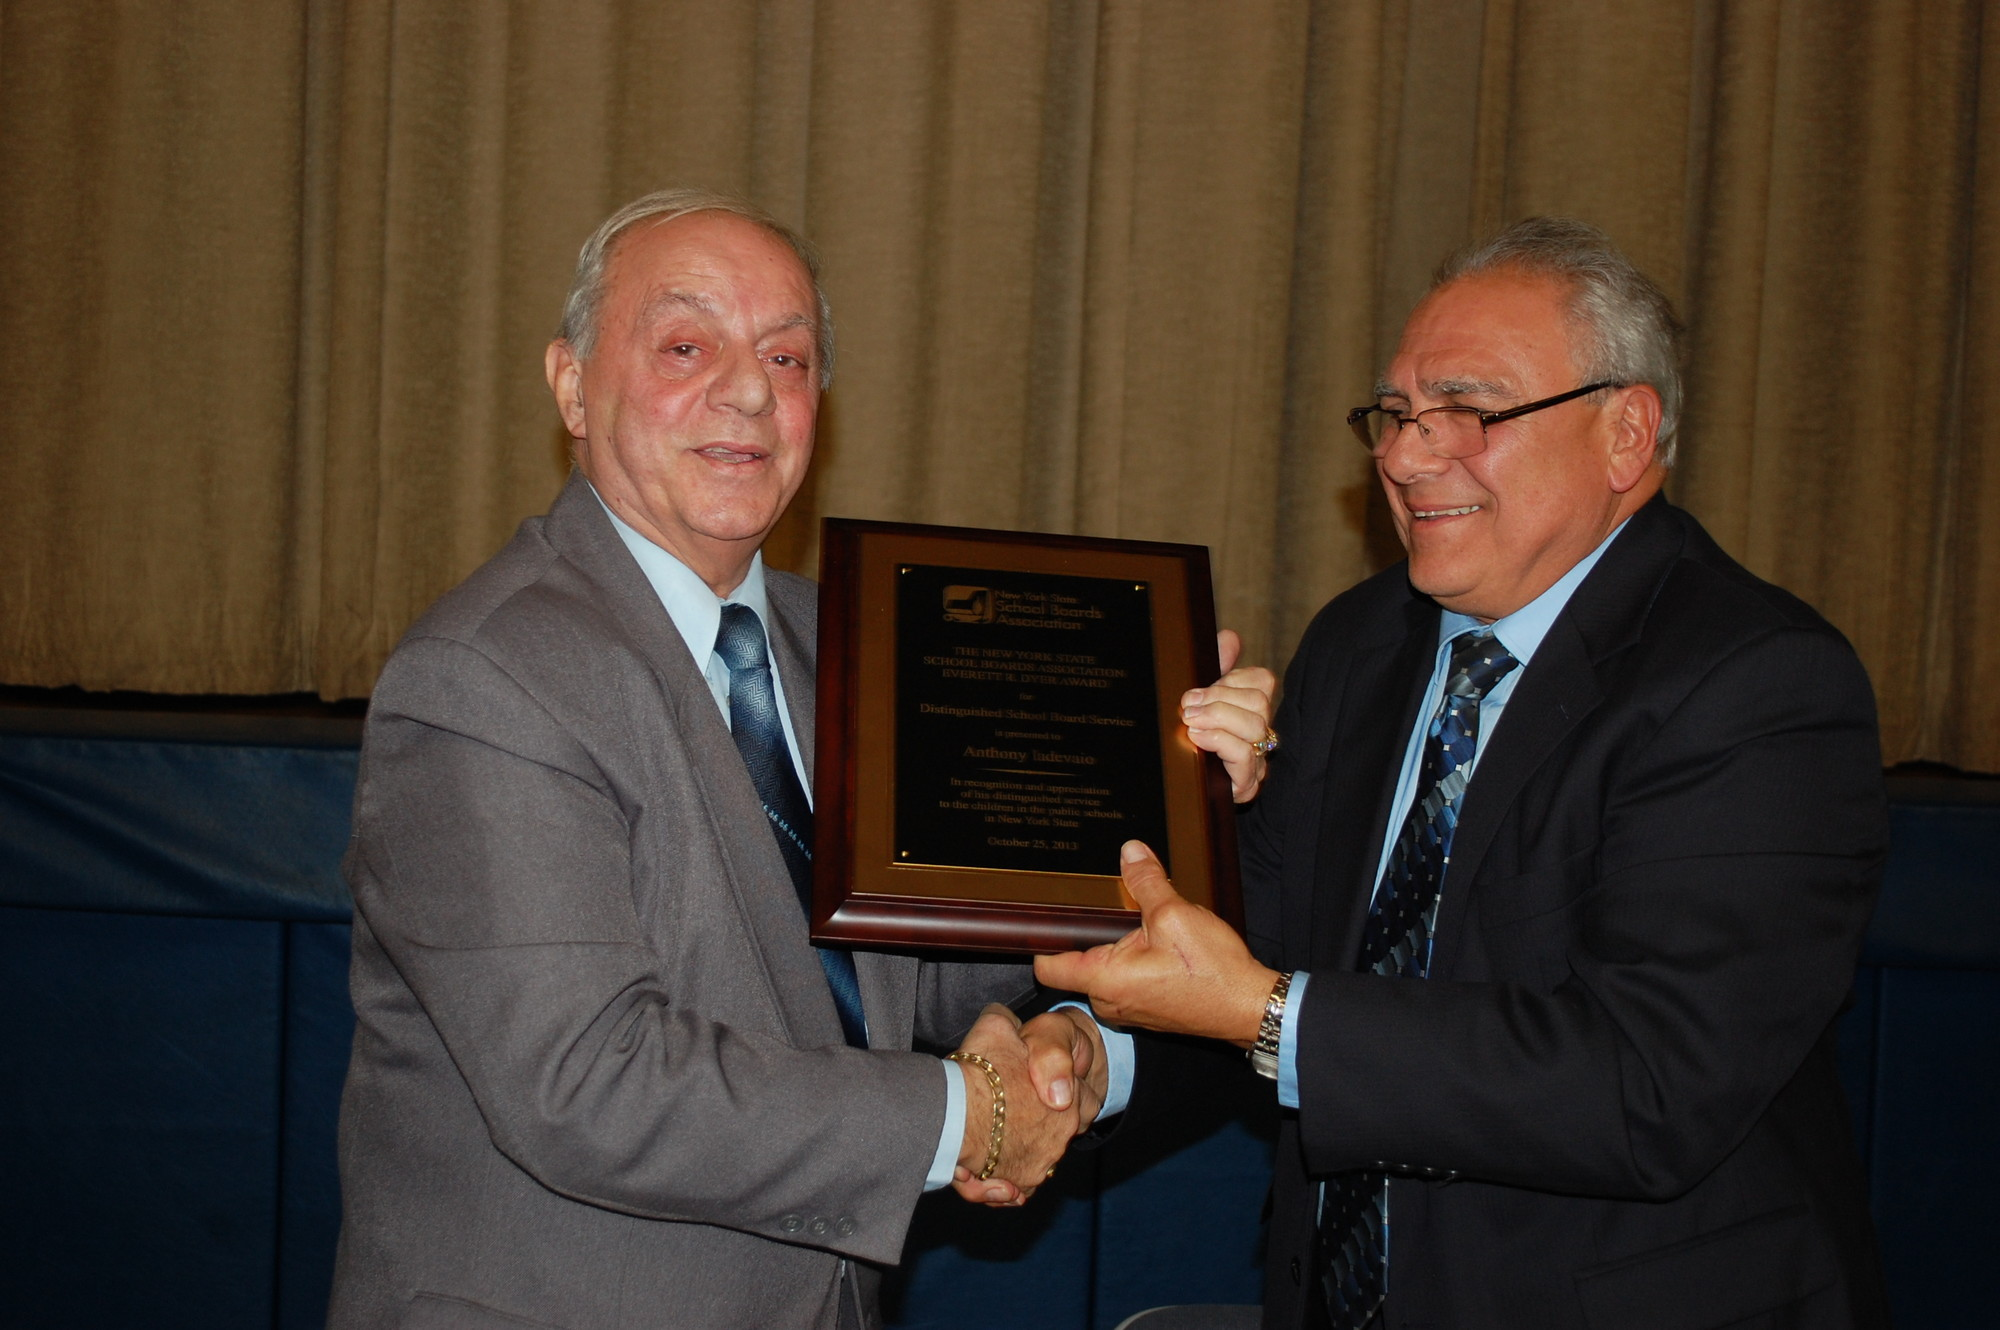 District 24 Board Trustee Anthony Iadevaio, left, receives his 2013 Everett R. Dyer Award from Board President Paul DePace at the Oct. 30 meeting.